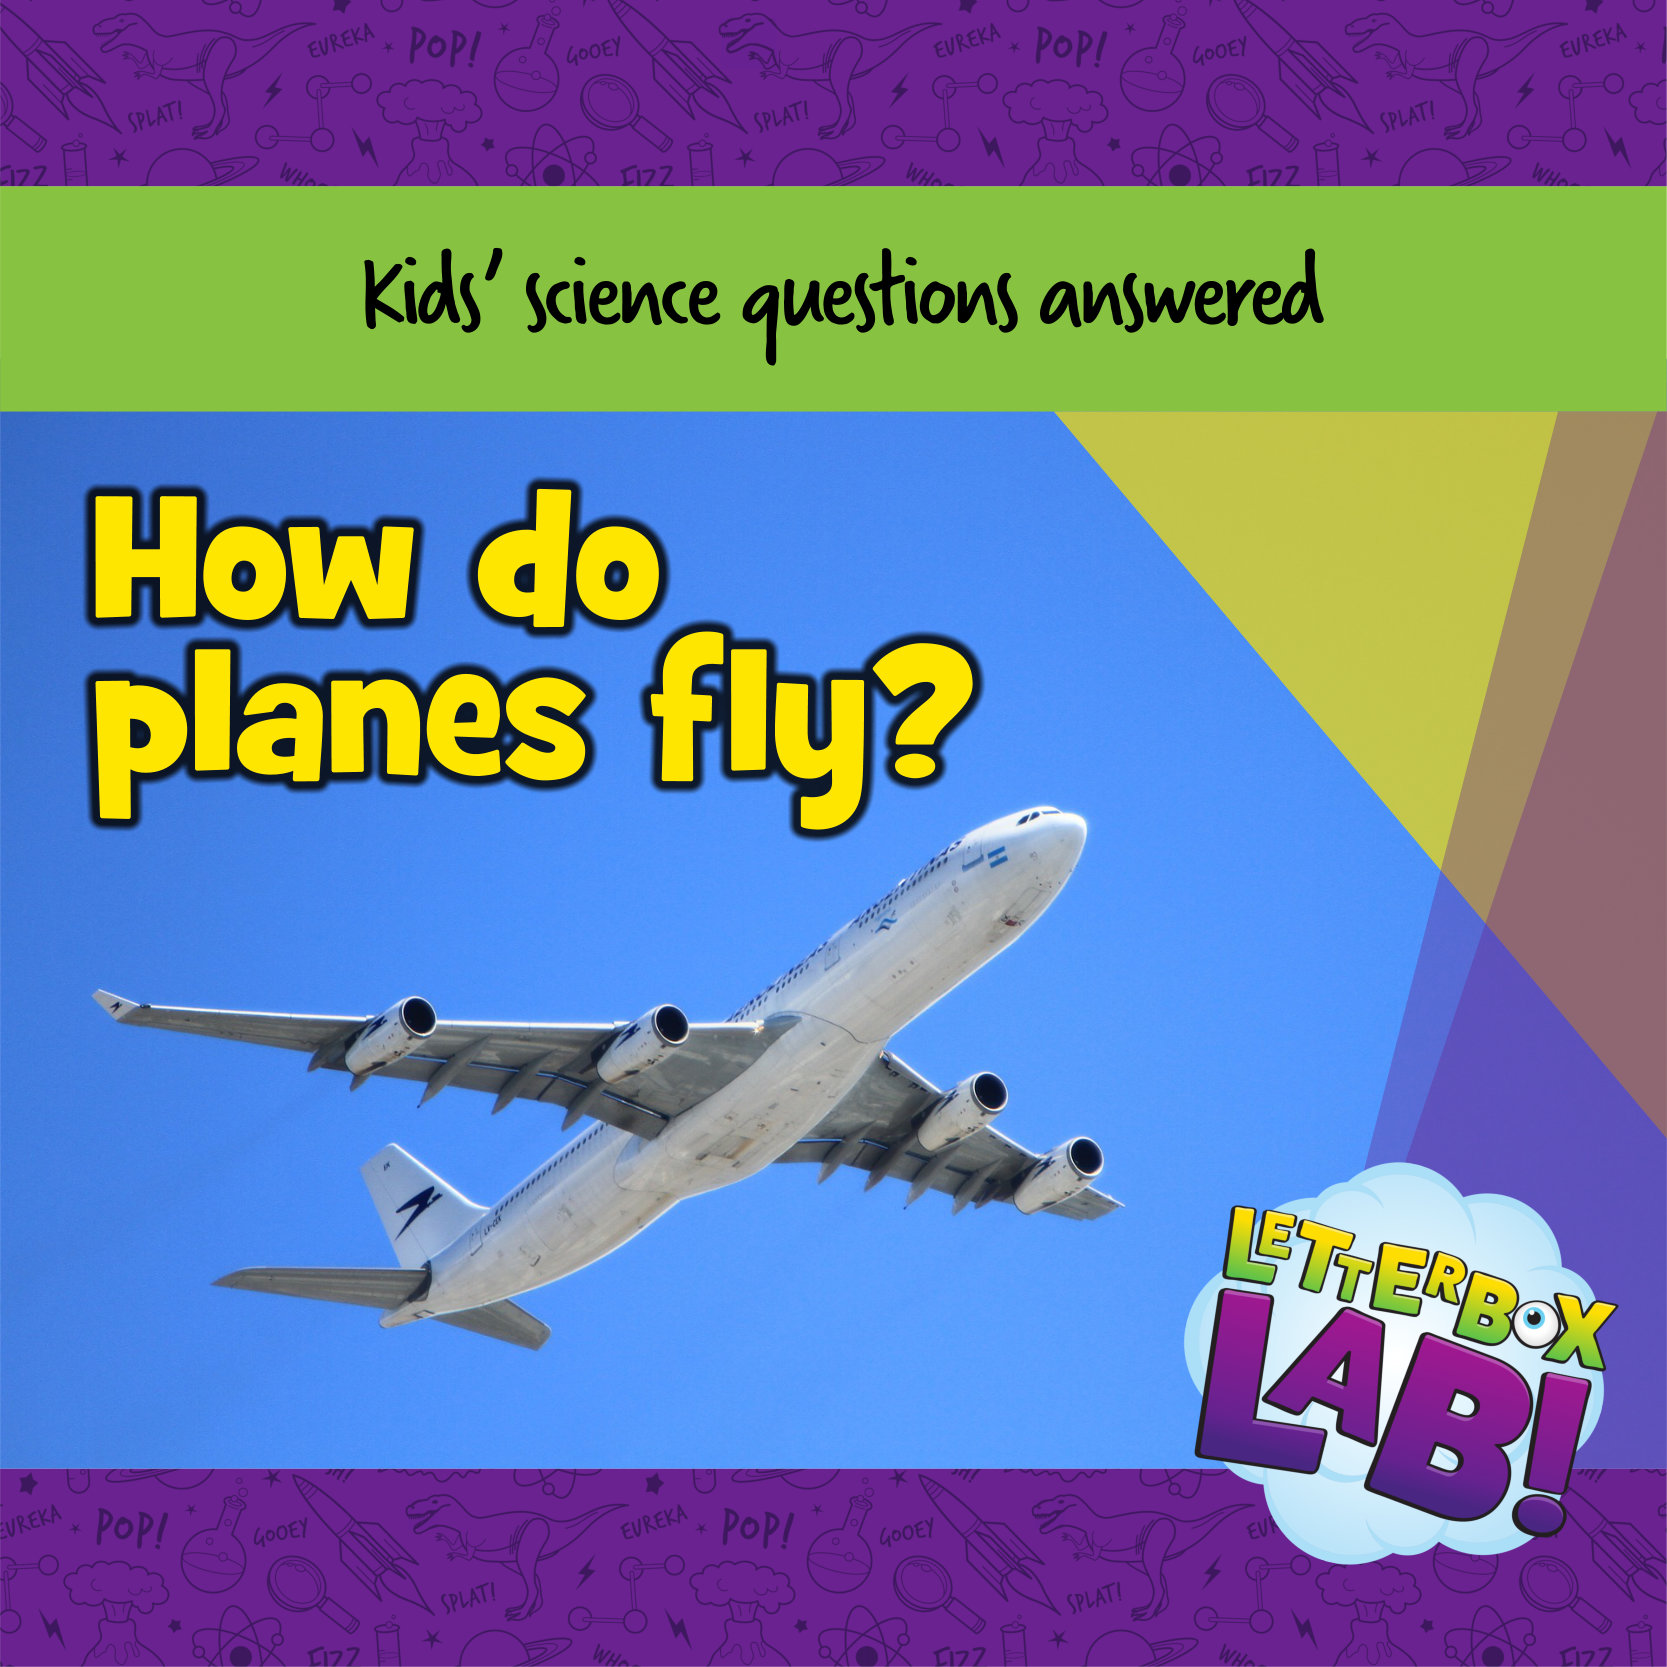 What do the planes fly on 15